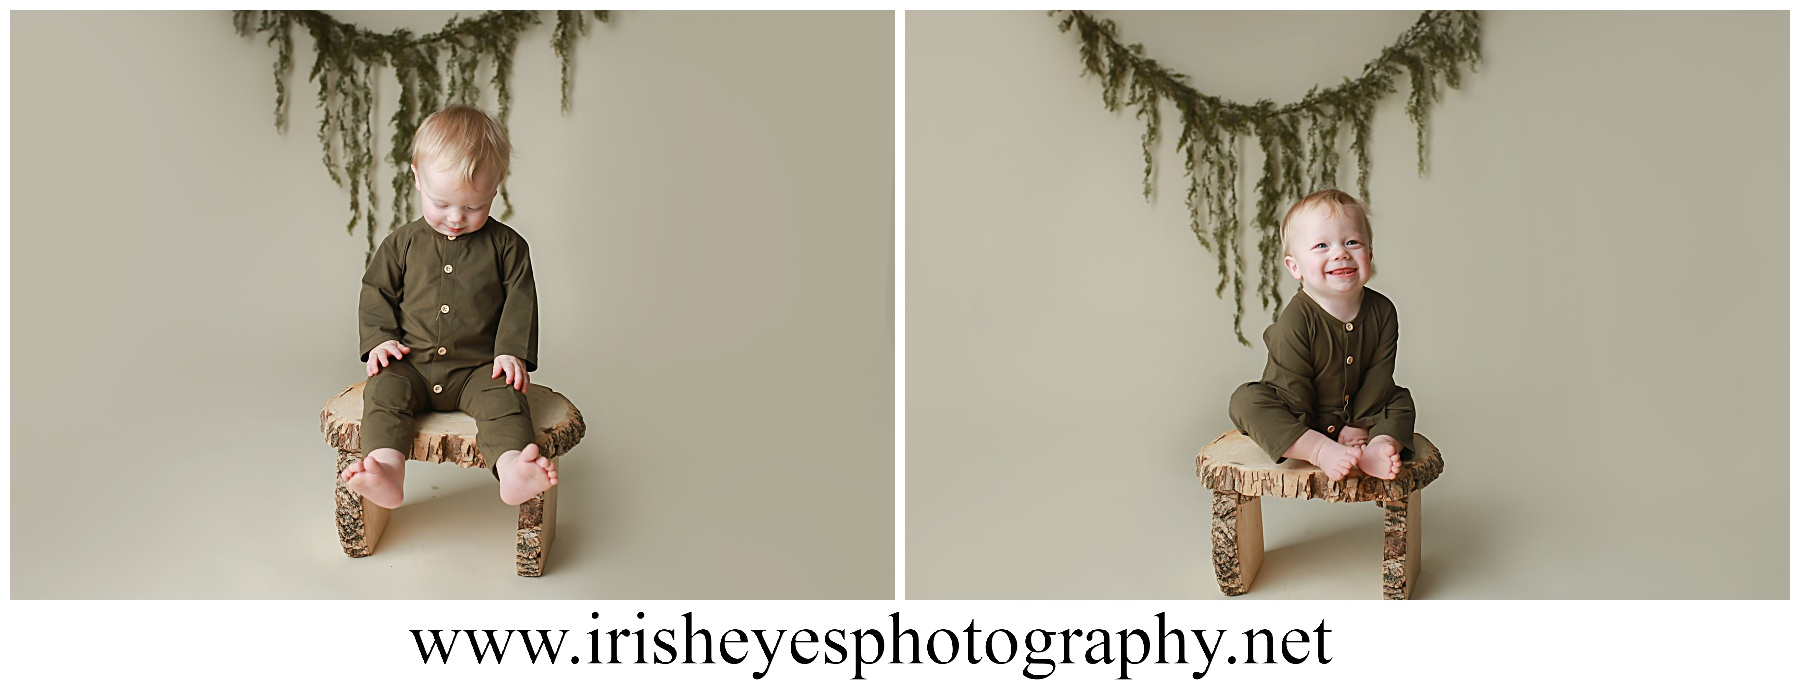 Gahanna Ohio Newborn Photographer_0211.jpg